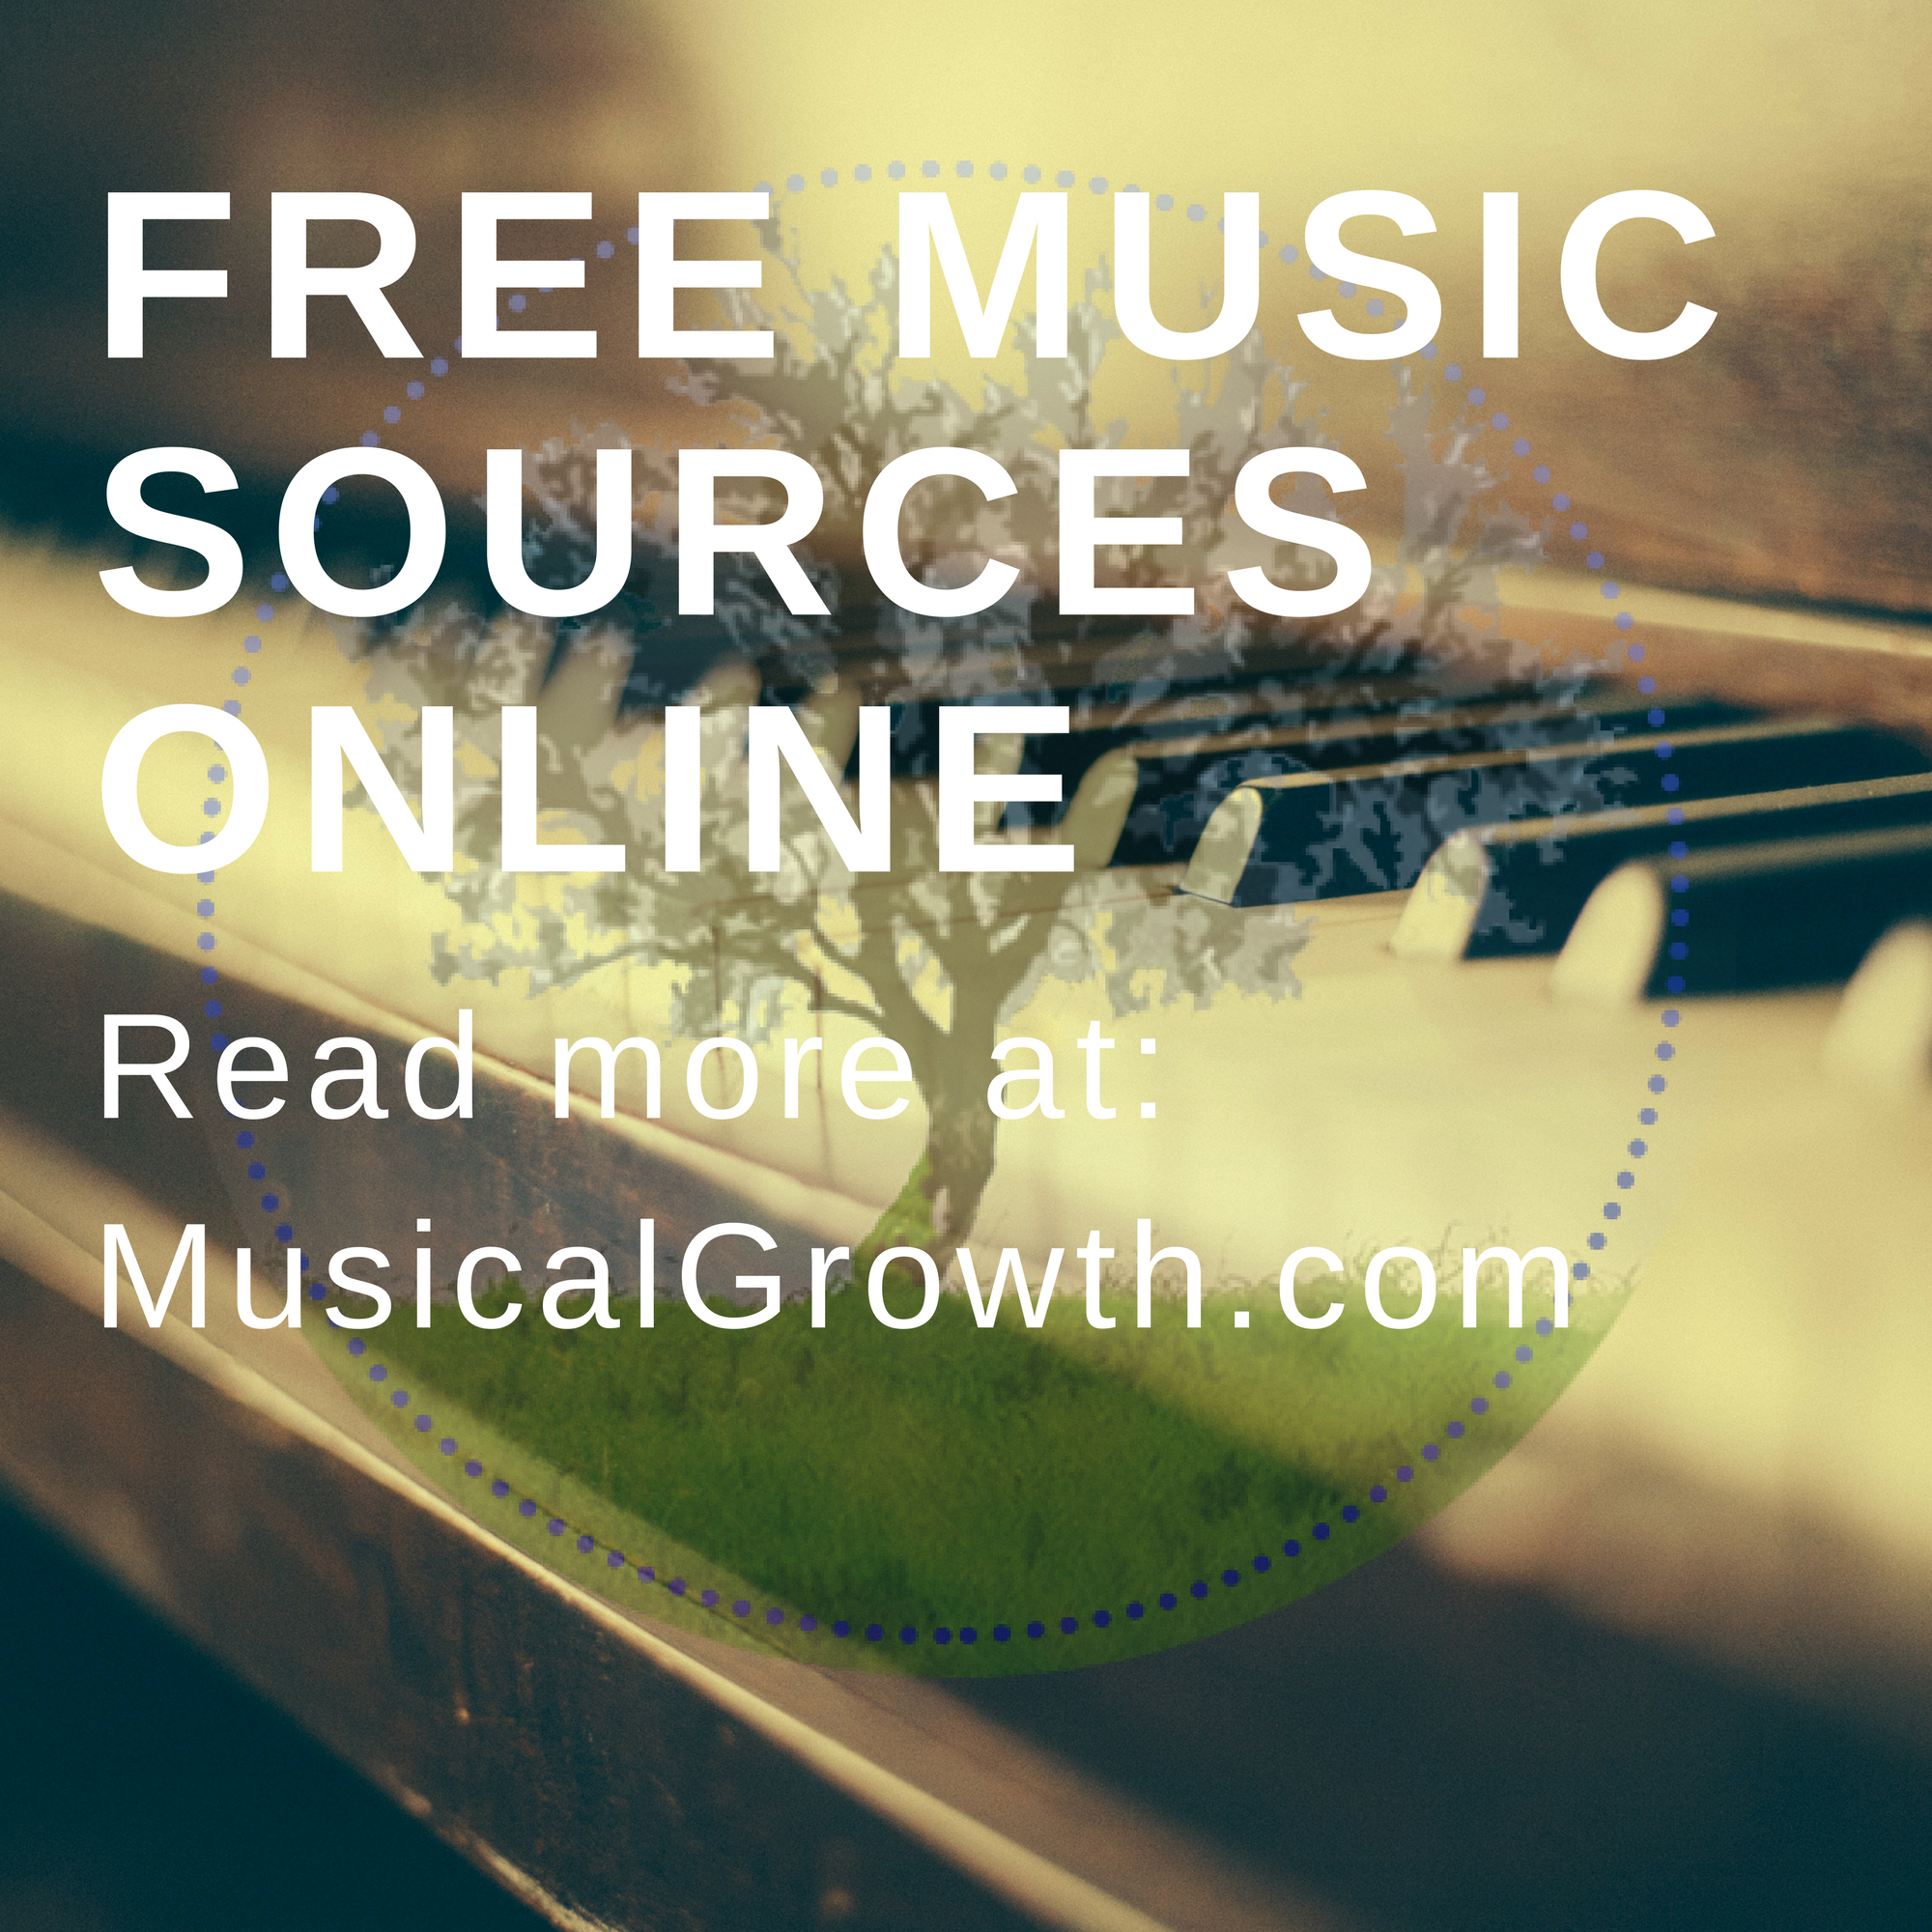 Free Music Sources - MusicalGrowth.com